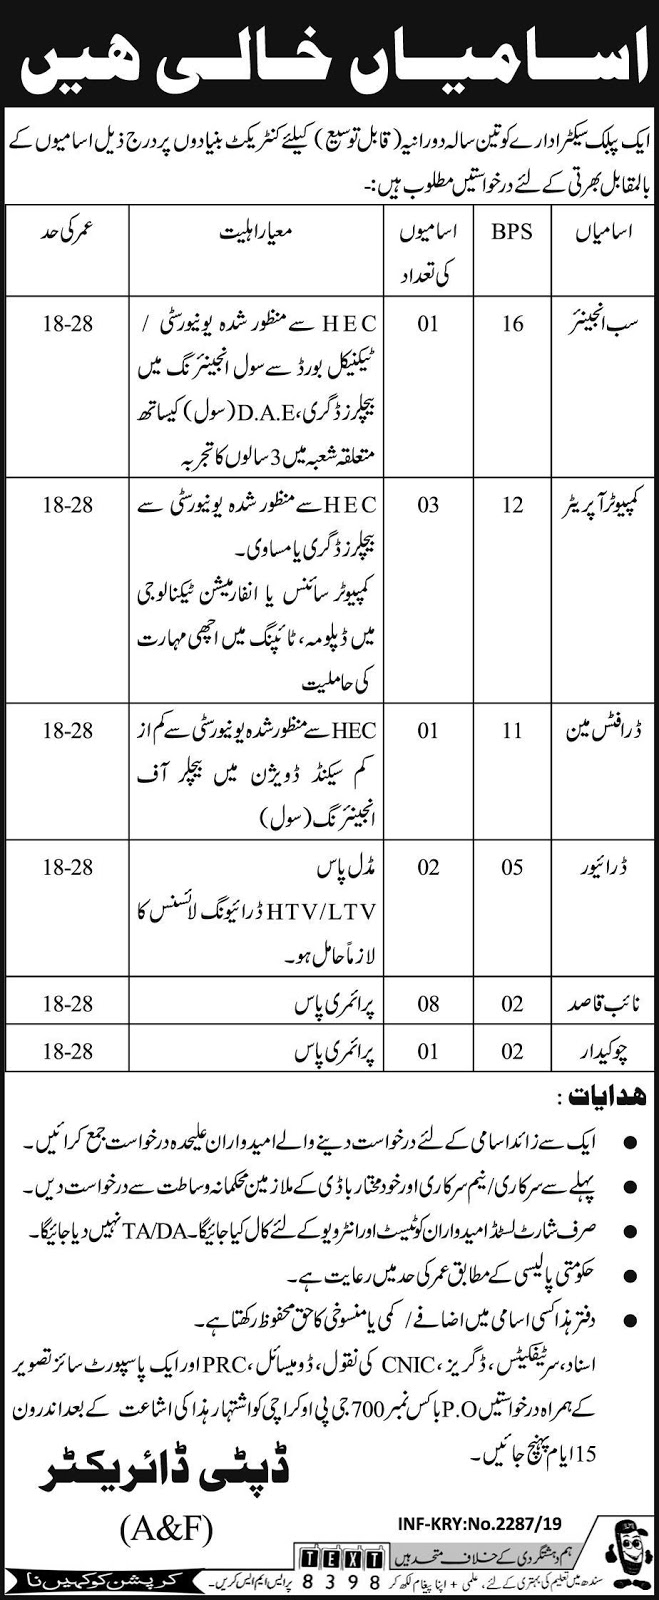 PAEC Jobs in Pakistan, Atomic Energy Commission Jobs, Computer